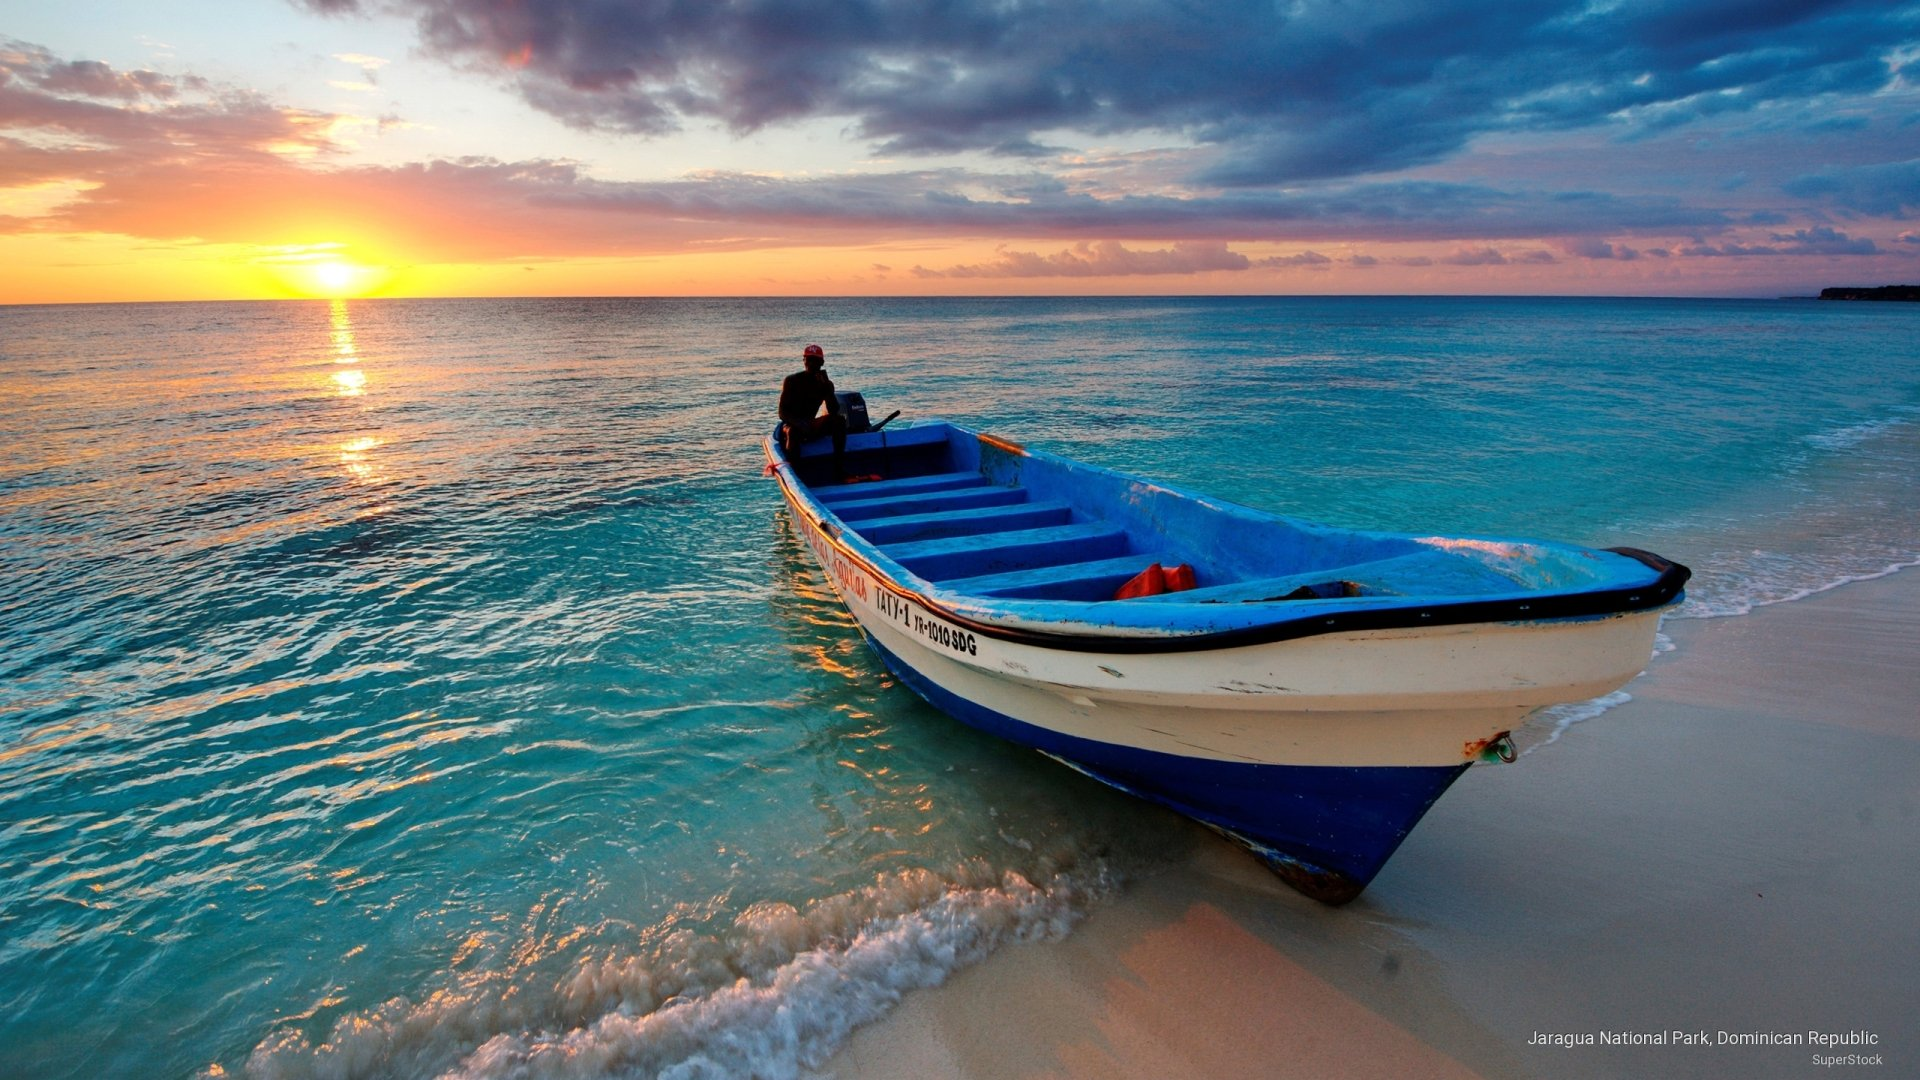 Boat at Sunset HD Wallpaper Background Image 2560x1440 1920x1080